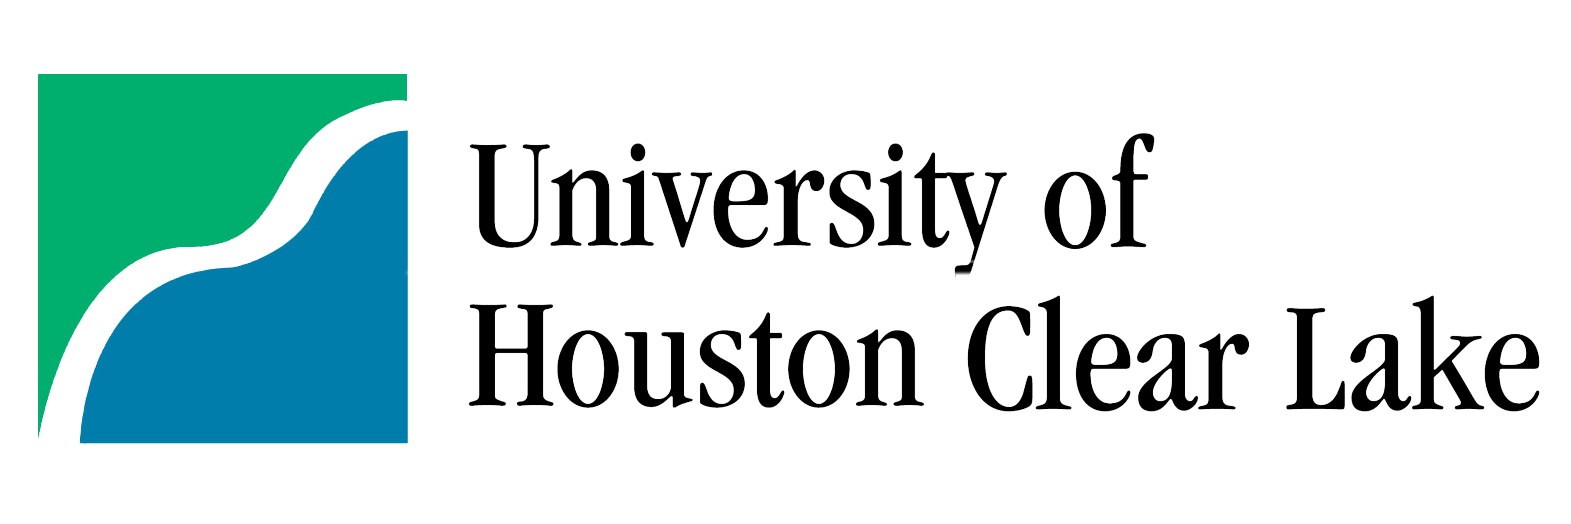 University of Houston - Clear Lake | University of houston, Clear ...